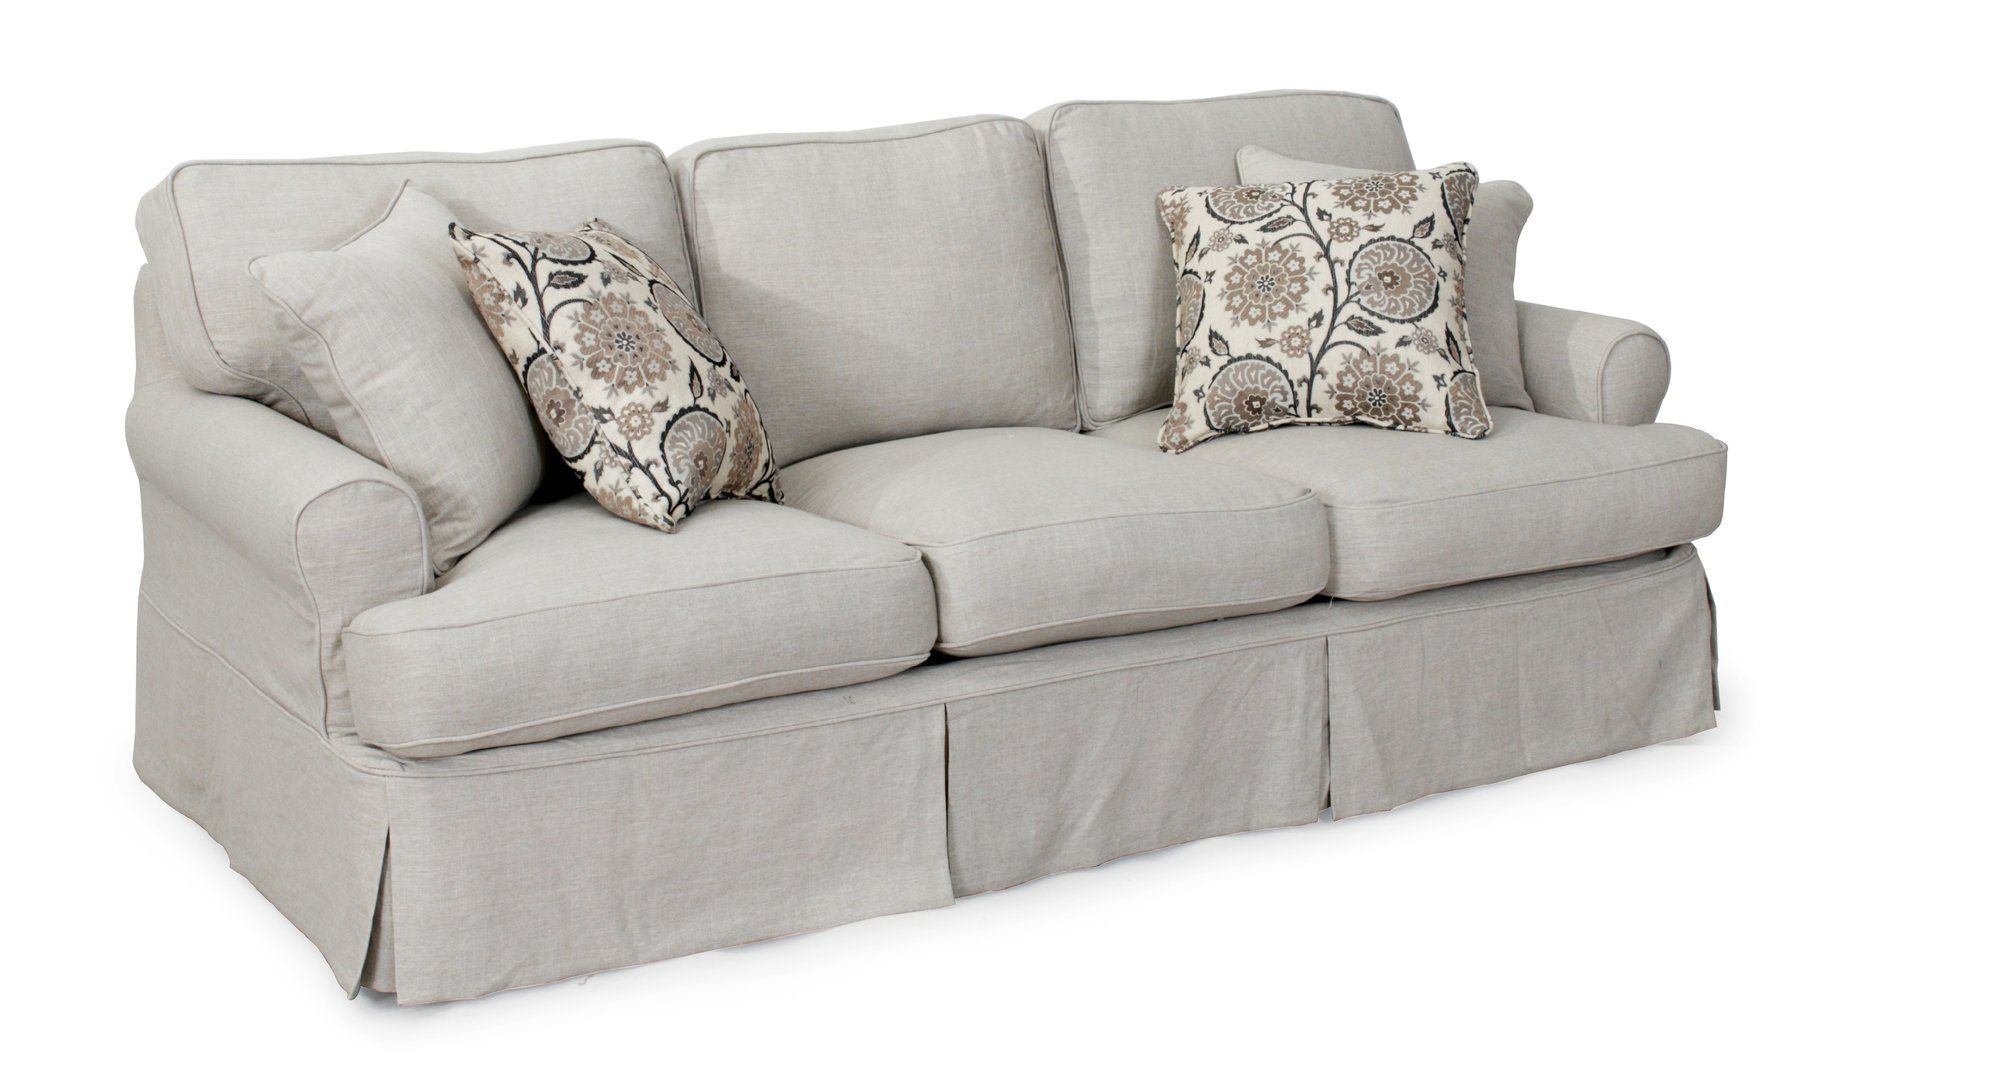 Callie Sofa T Cushion Slipcover Set | Products | Pinterest | Sofa Intended For Callie Sofa Chairs (Image 13 of 25)